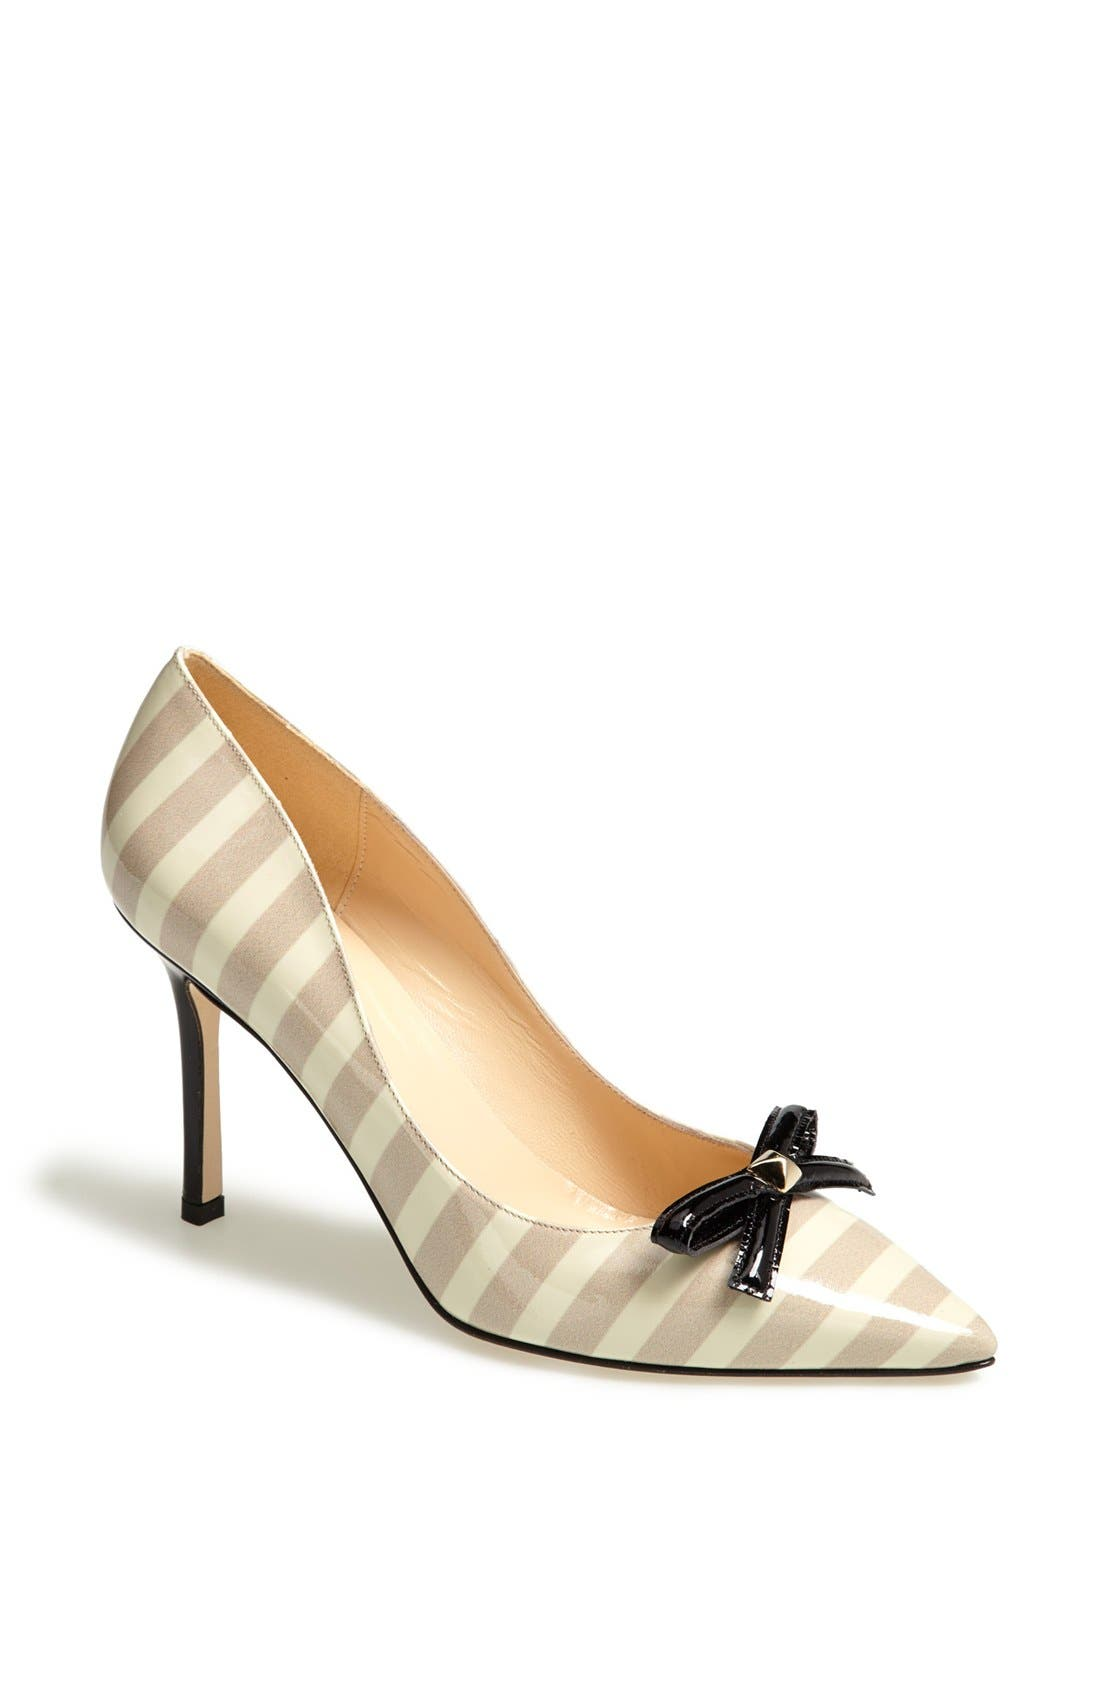 Main Image - kate spade new york 'pietra' leather pump